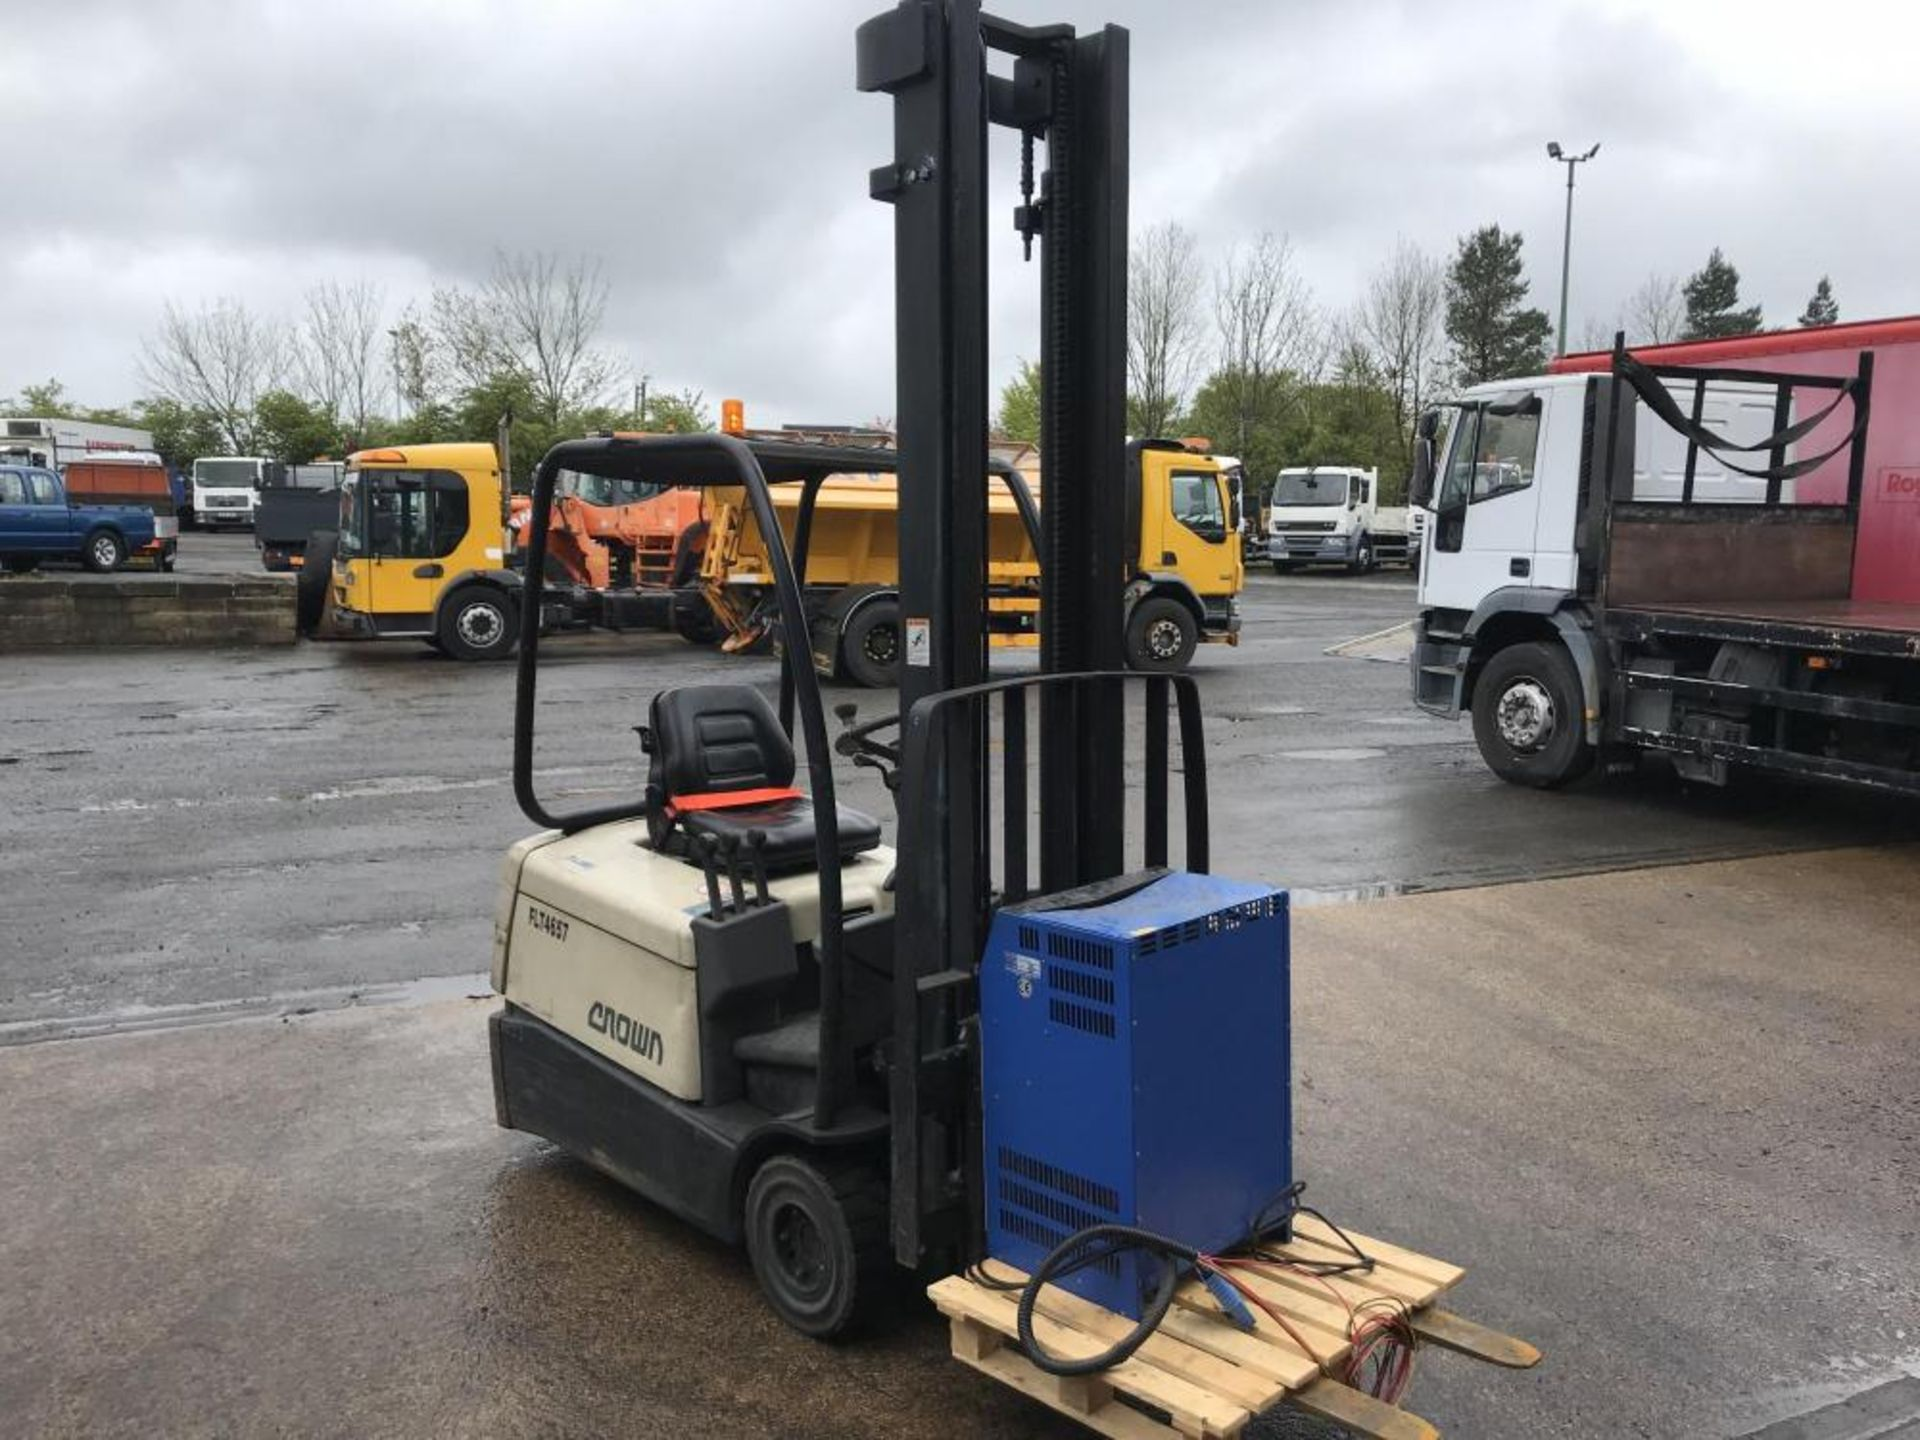 Lot 76 - 1998 CROWN ELECTRIC FORKLIFT TRUCK - CHARGER INCLUDED, GOOD WORKING ORDER *PLUS VAT*